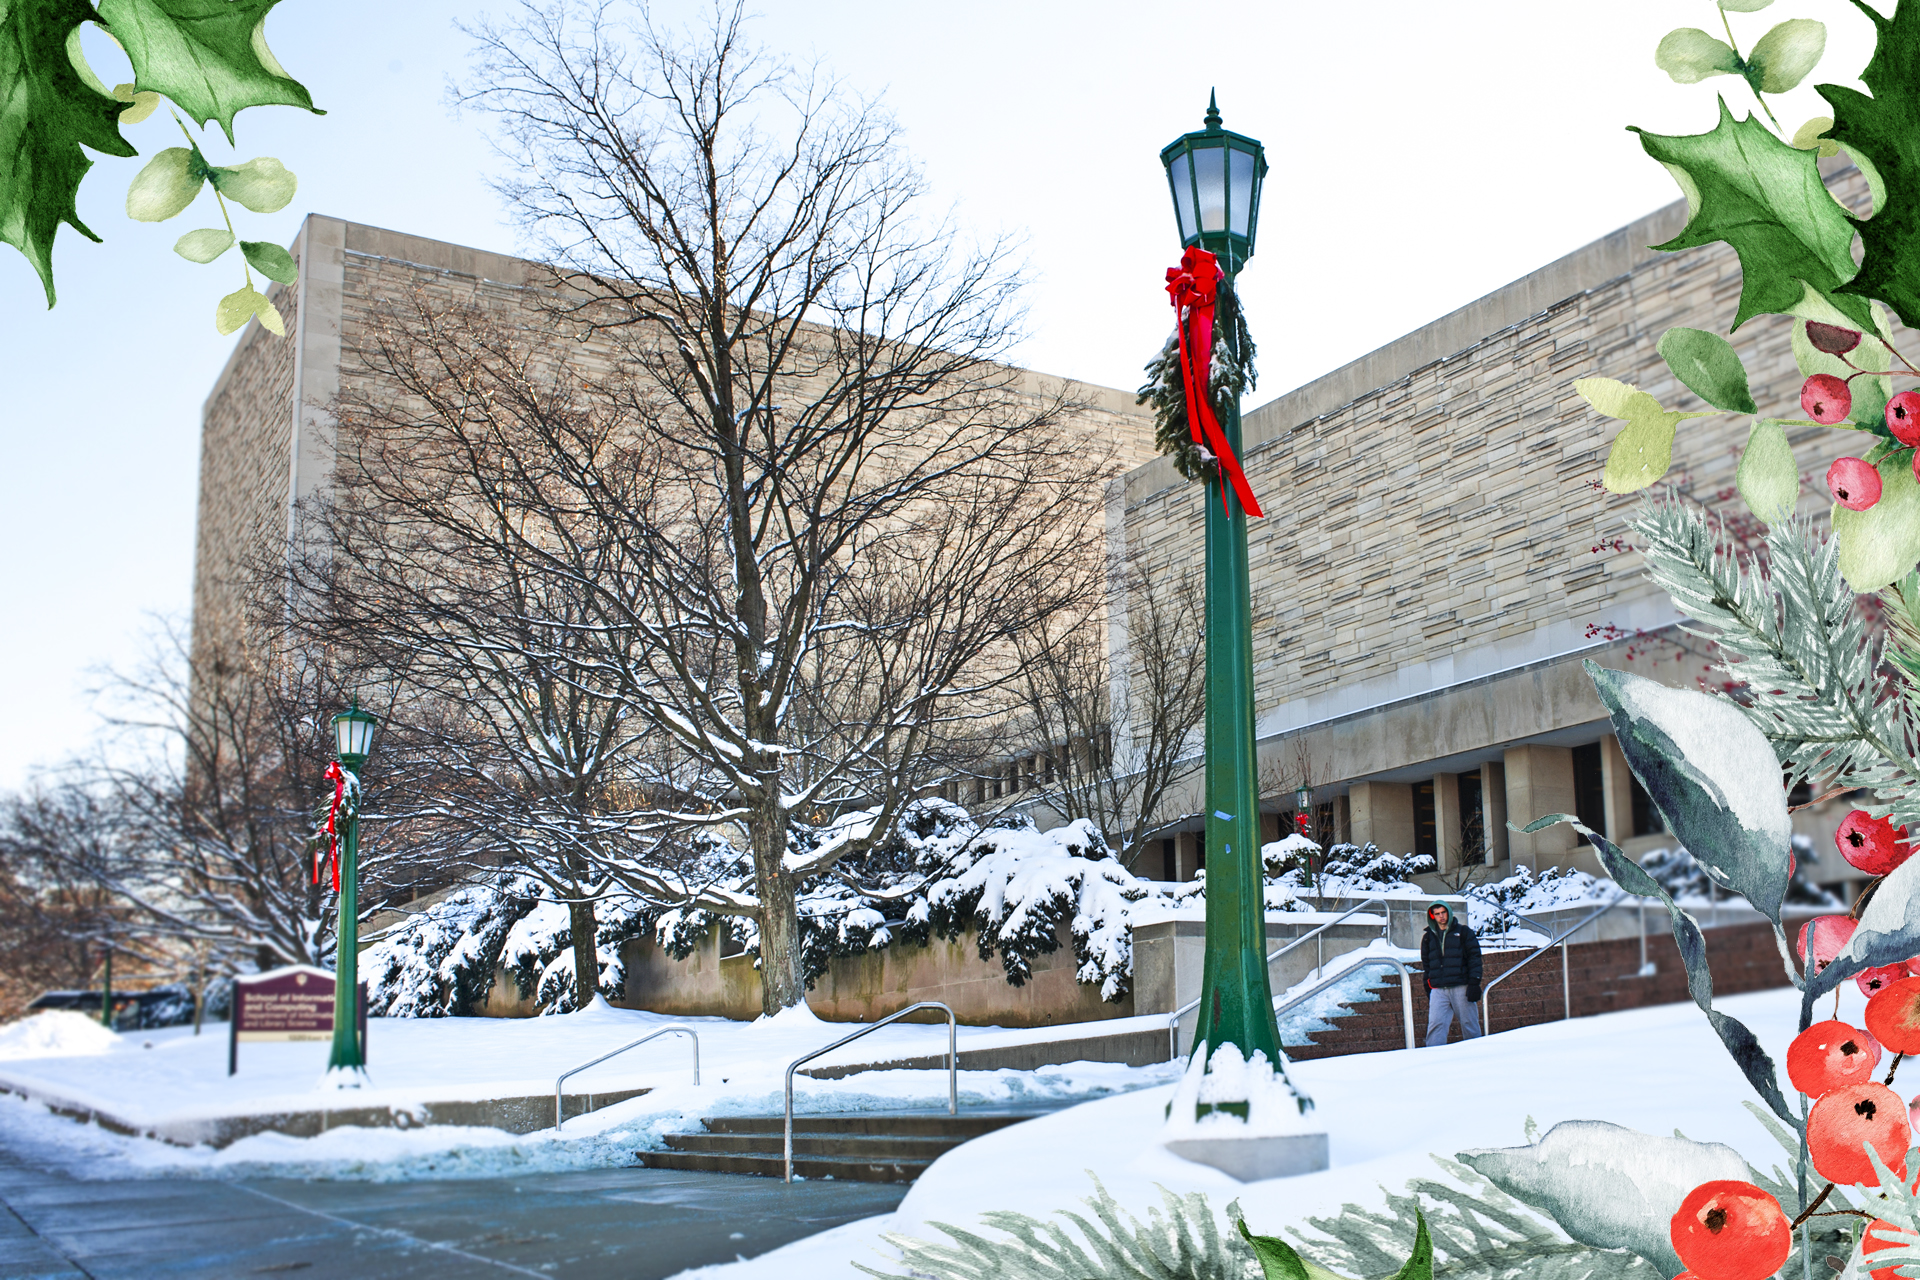 A festive frame of greenery is overlaid on a snowy photo of the Herman B Wells Library, as seen from 10th Street.